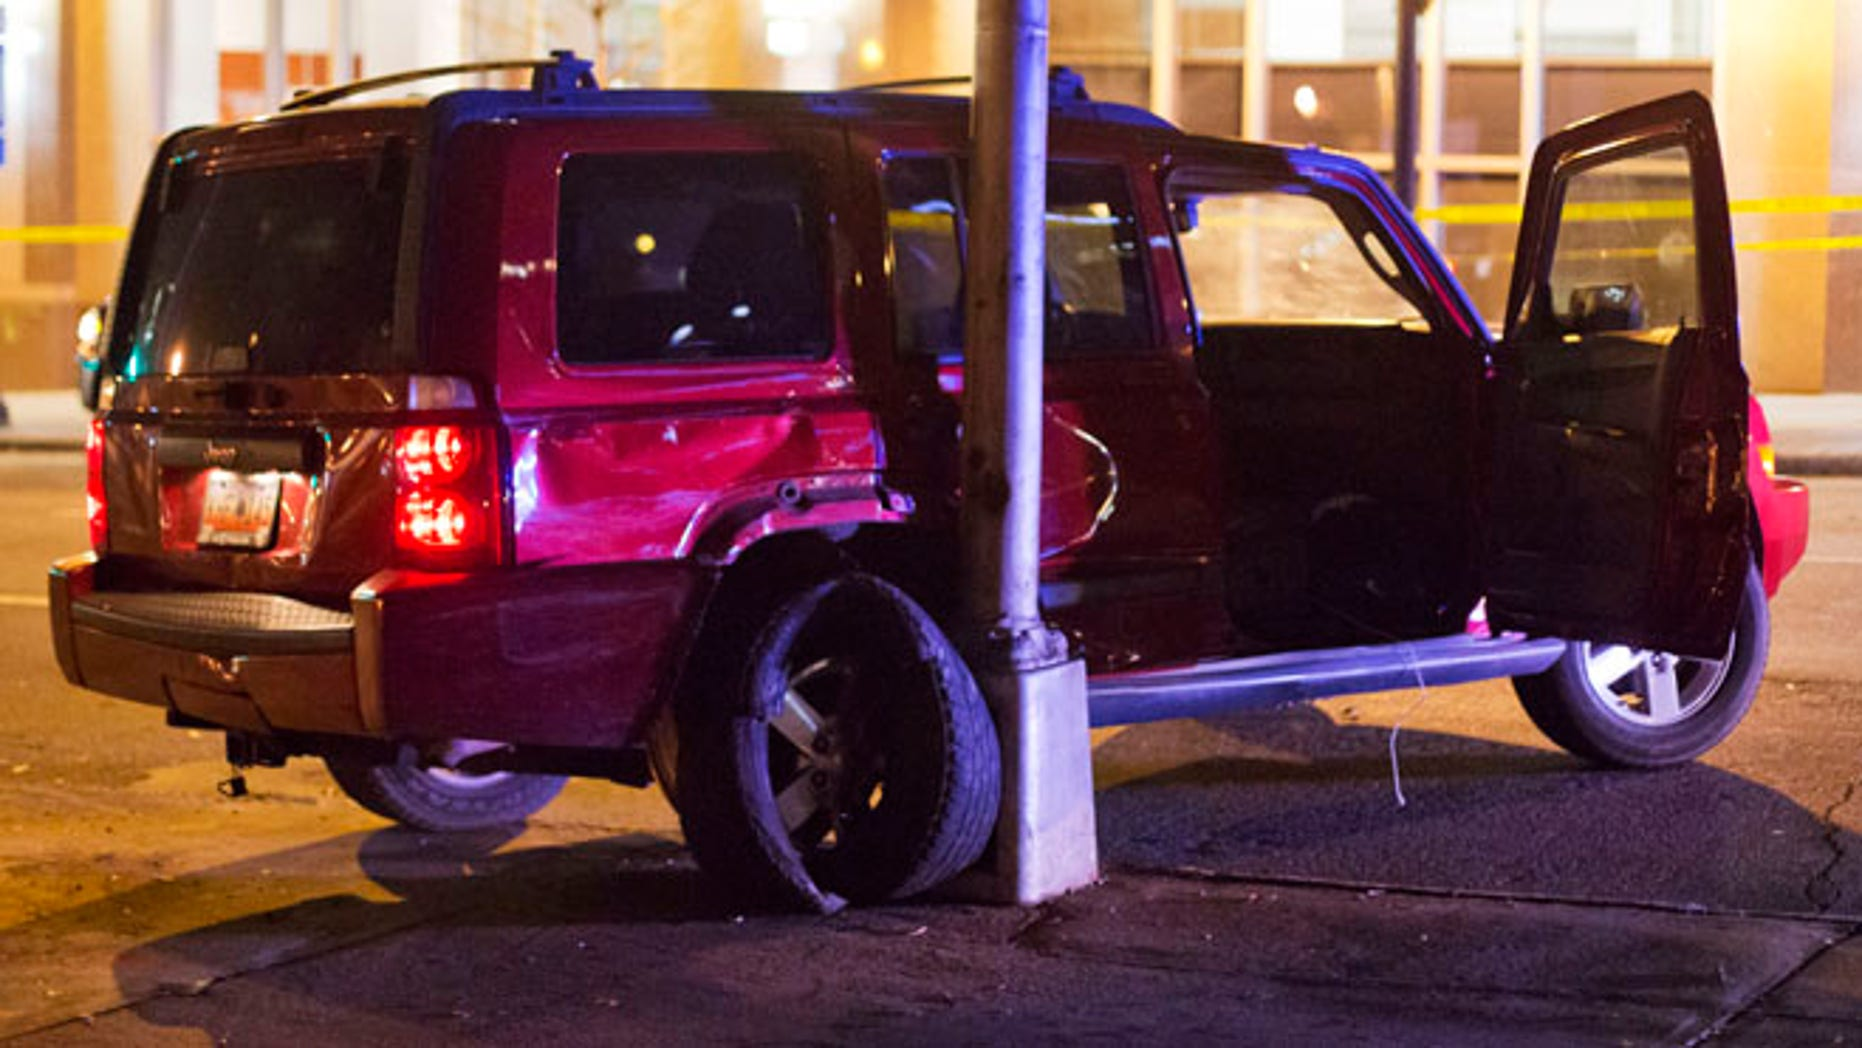 A vehicle is shown at the scene of an officer-involved shooting in downtown Atlanta.